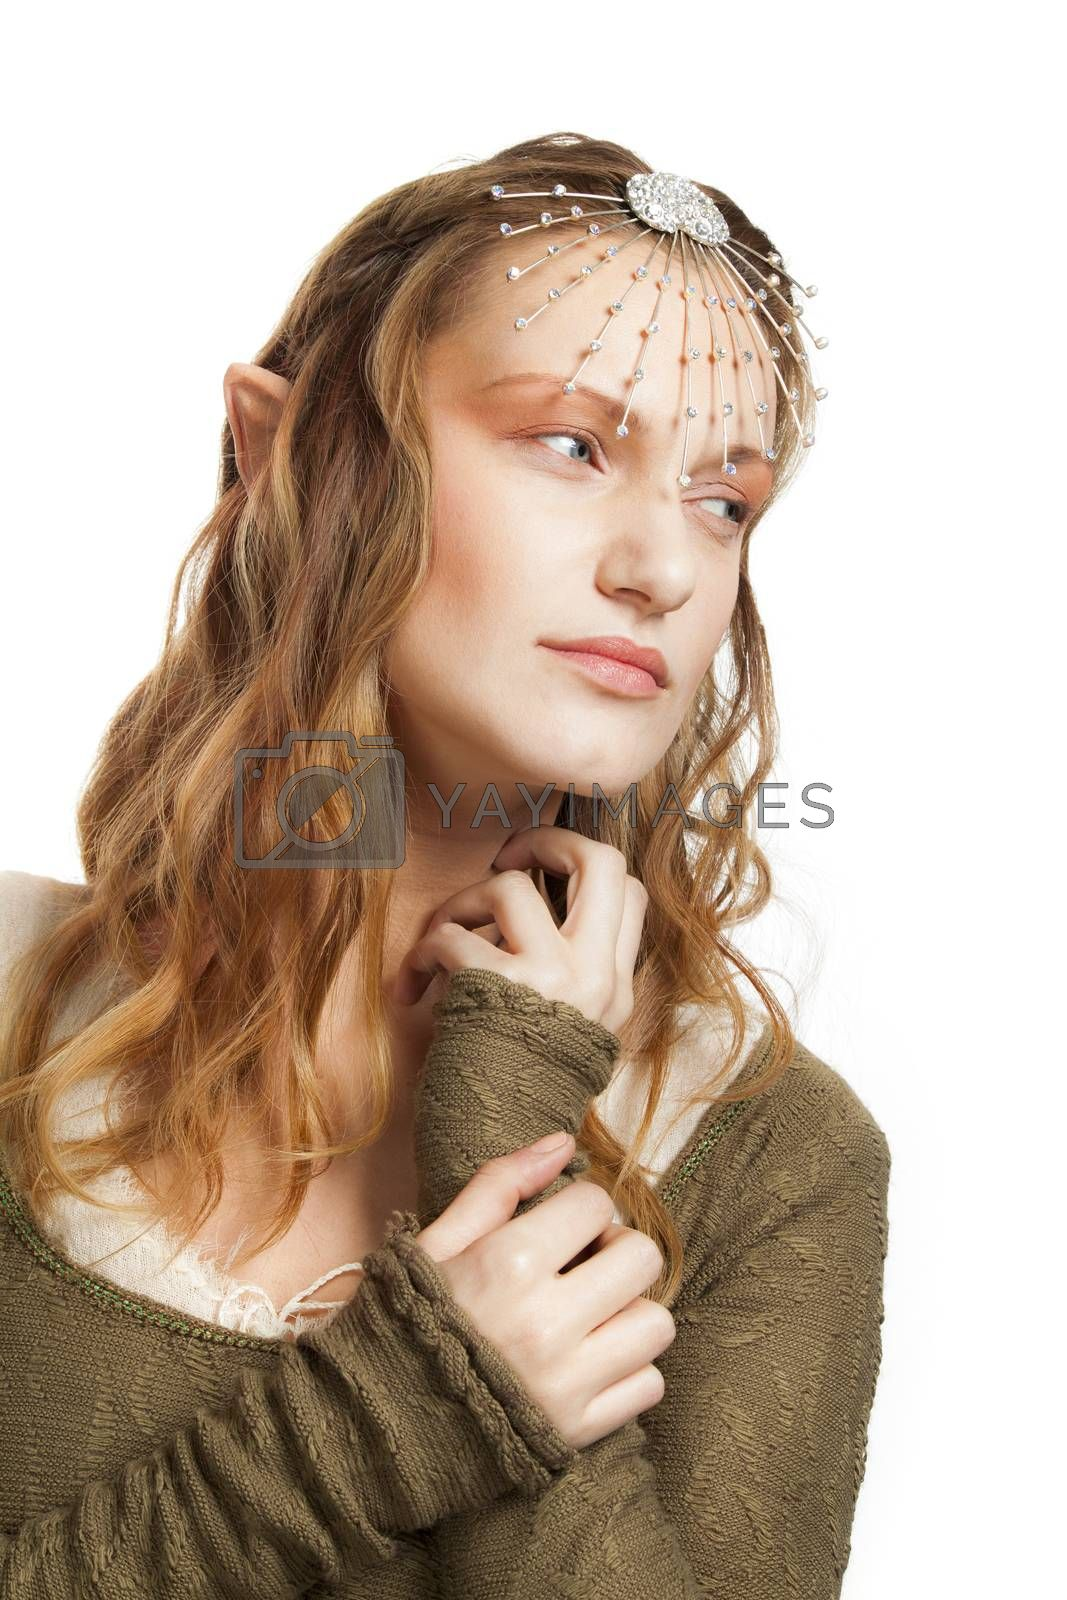 A portrait of a beautiful woman with tiara and elfs ears.